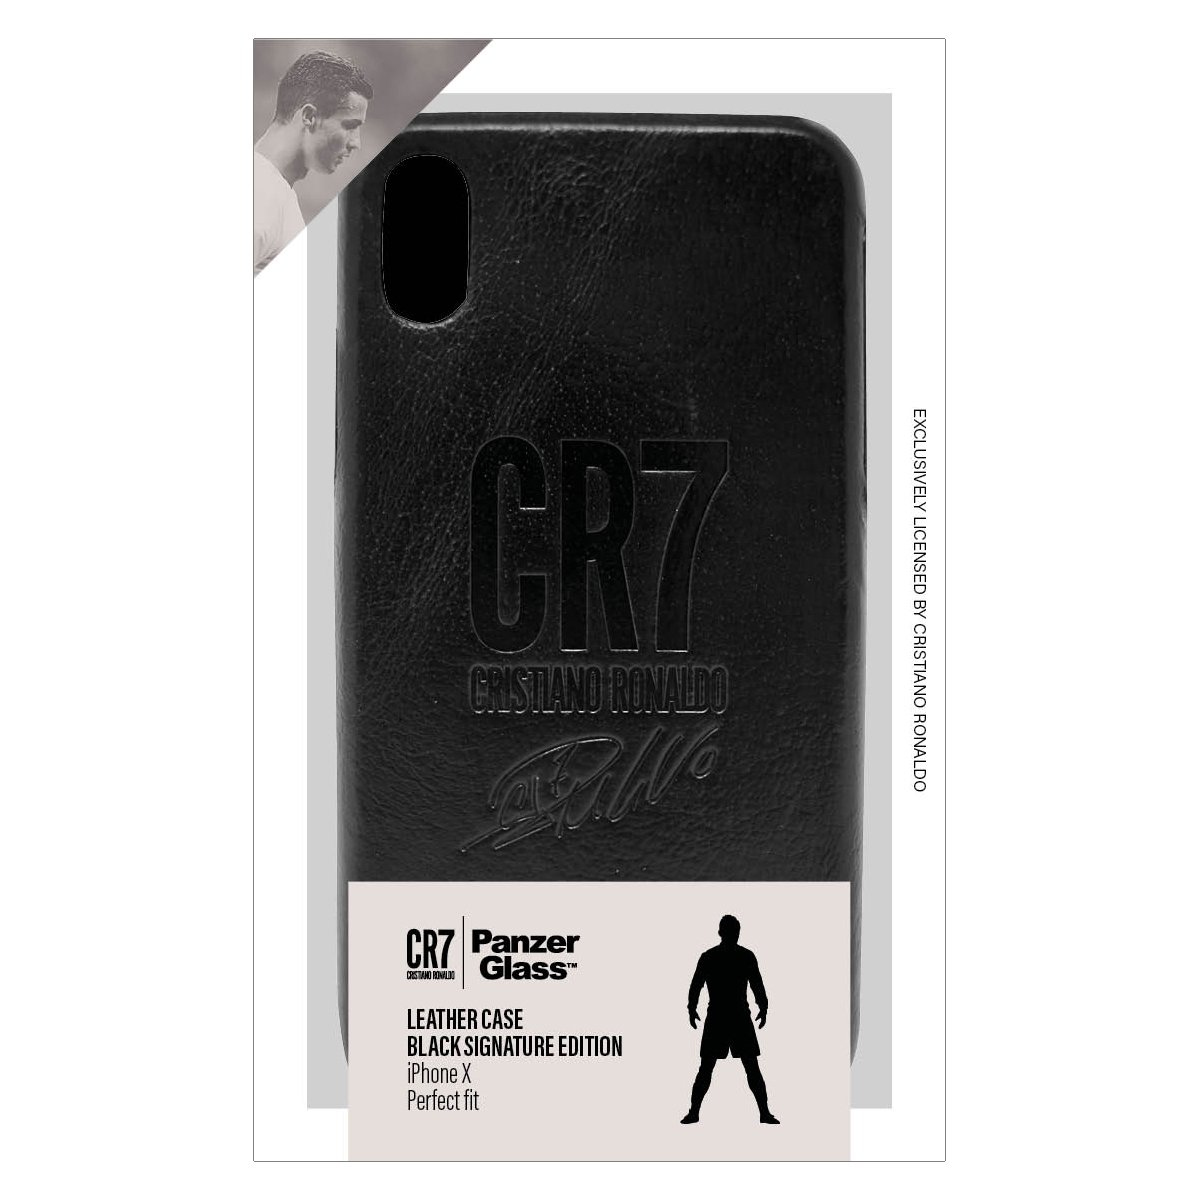 PANZERGLASS 0147 MOBILE PHONE CASE 14.7 CM (5.8